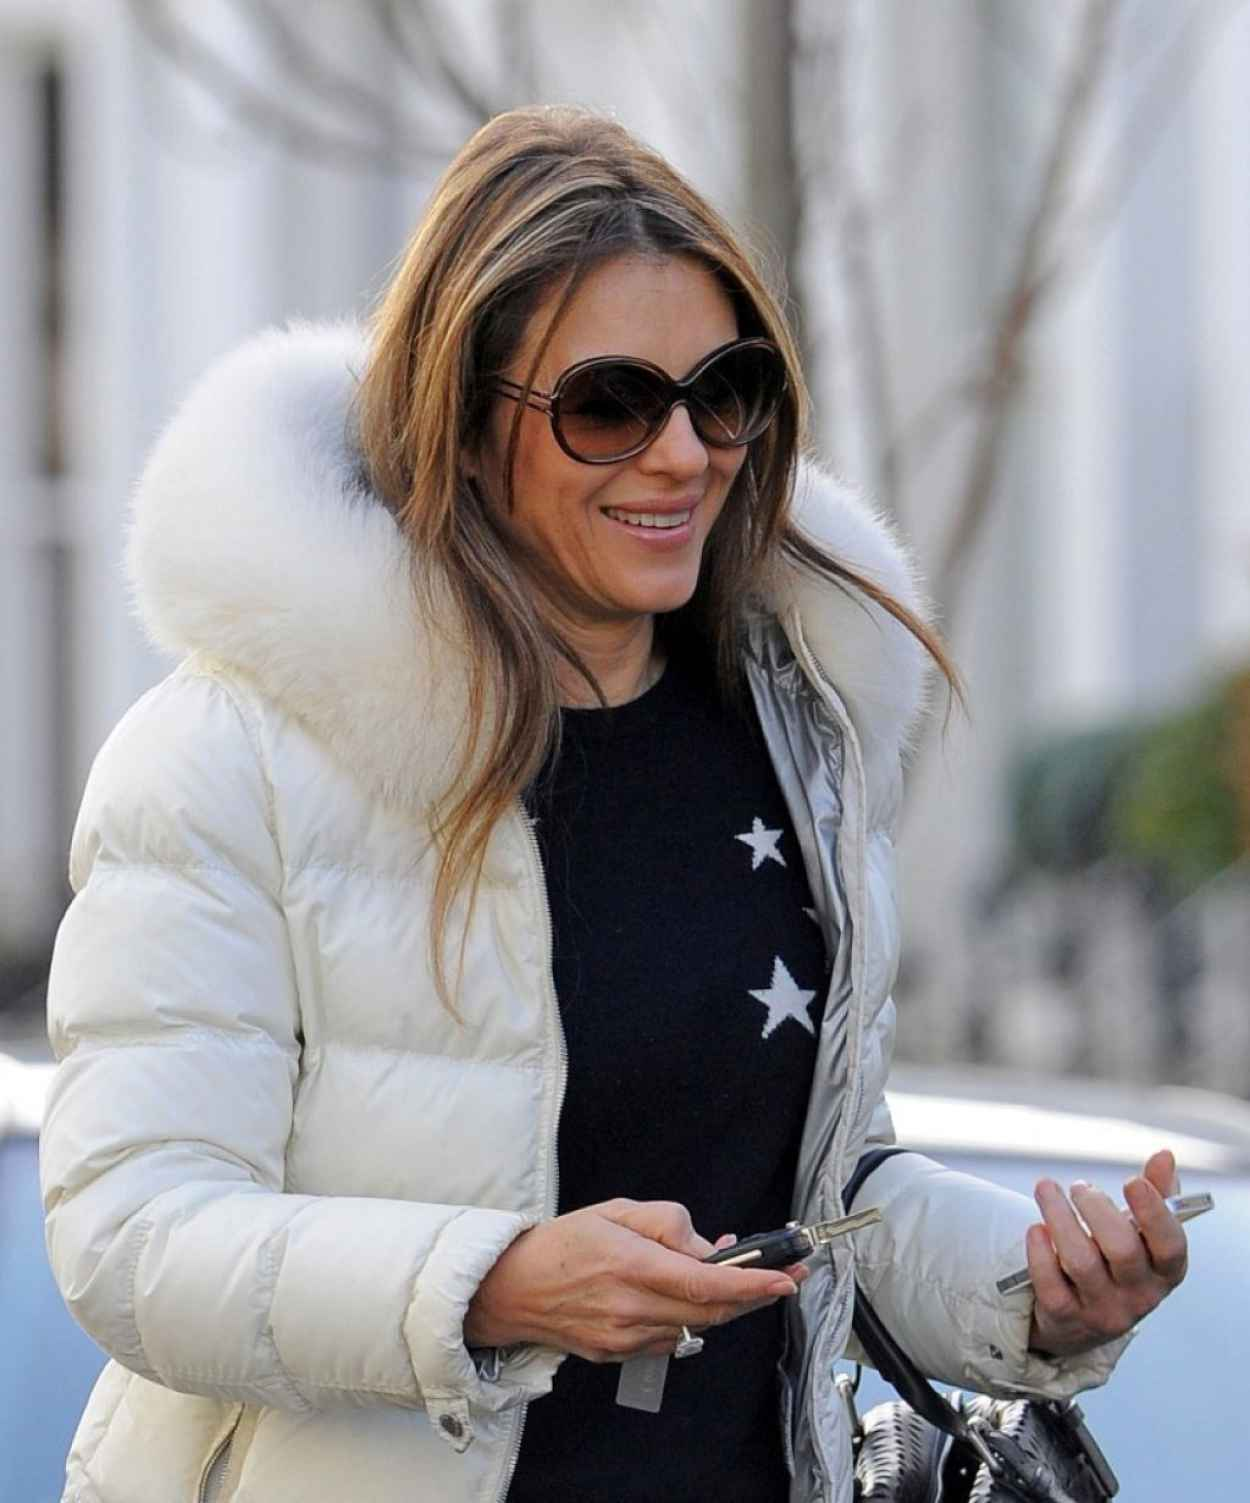 Elizabeth Hurley - Real London Street Style: Winter 2015 - February 2015-1